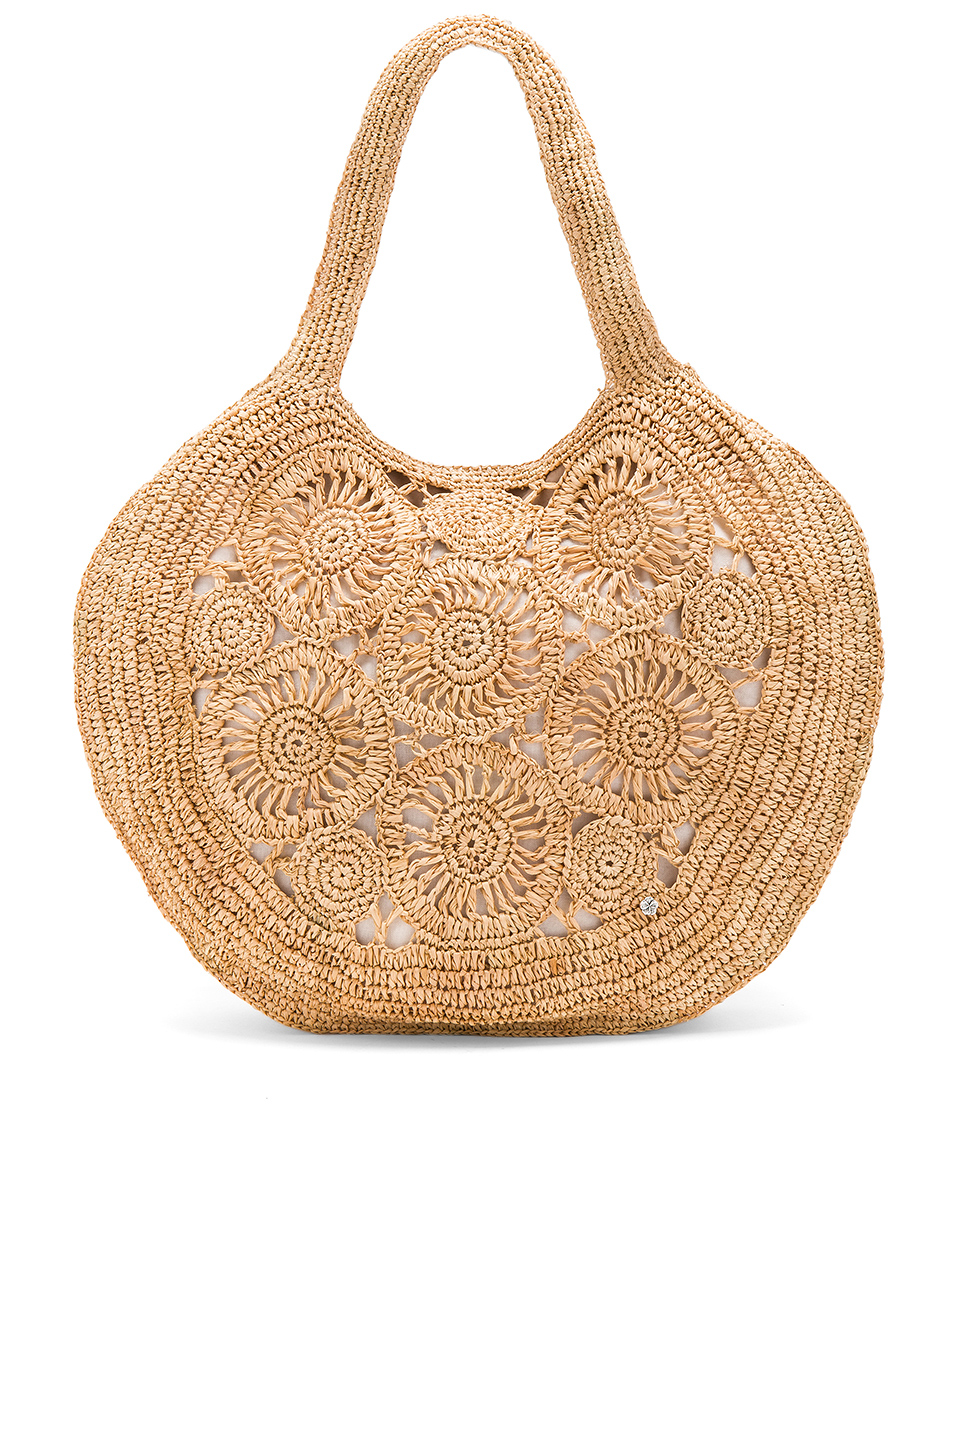 florabella Tortola Tote in Natural